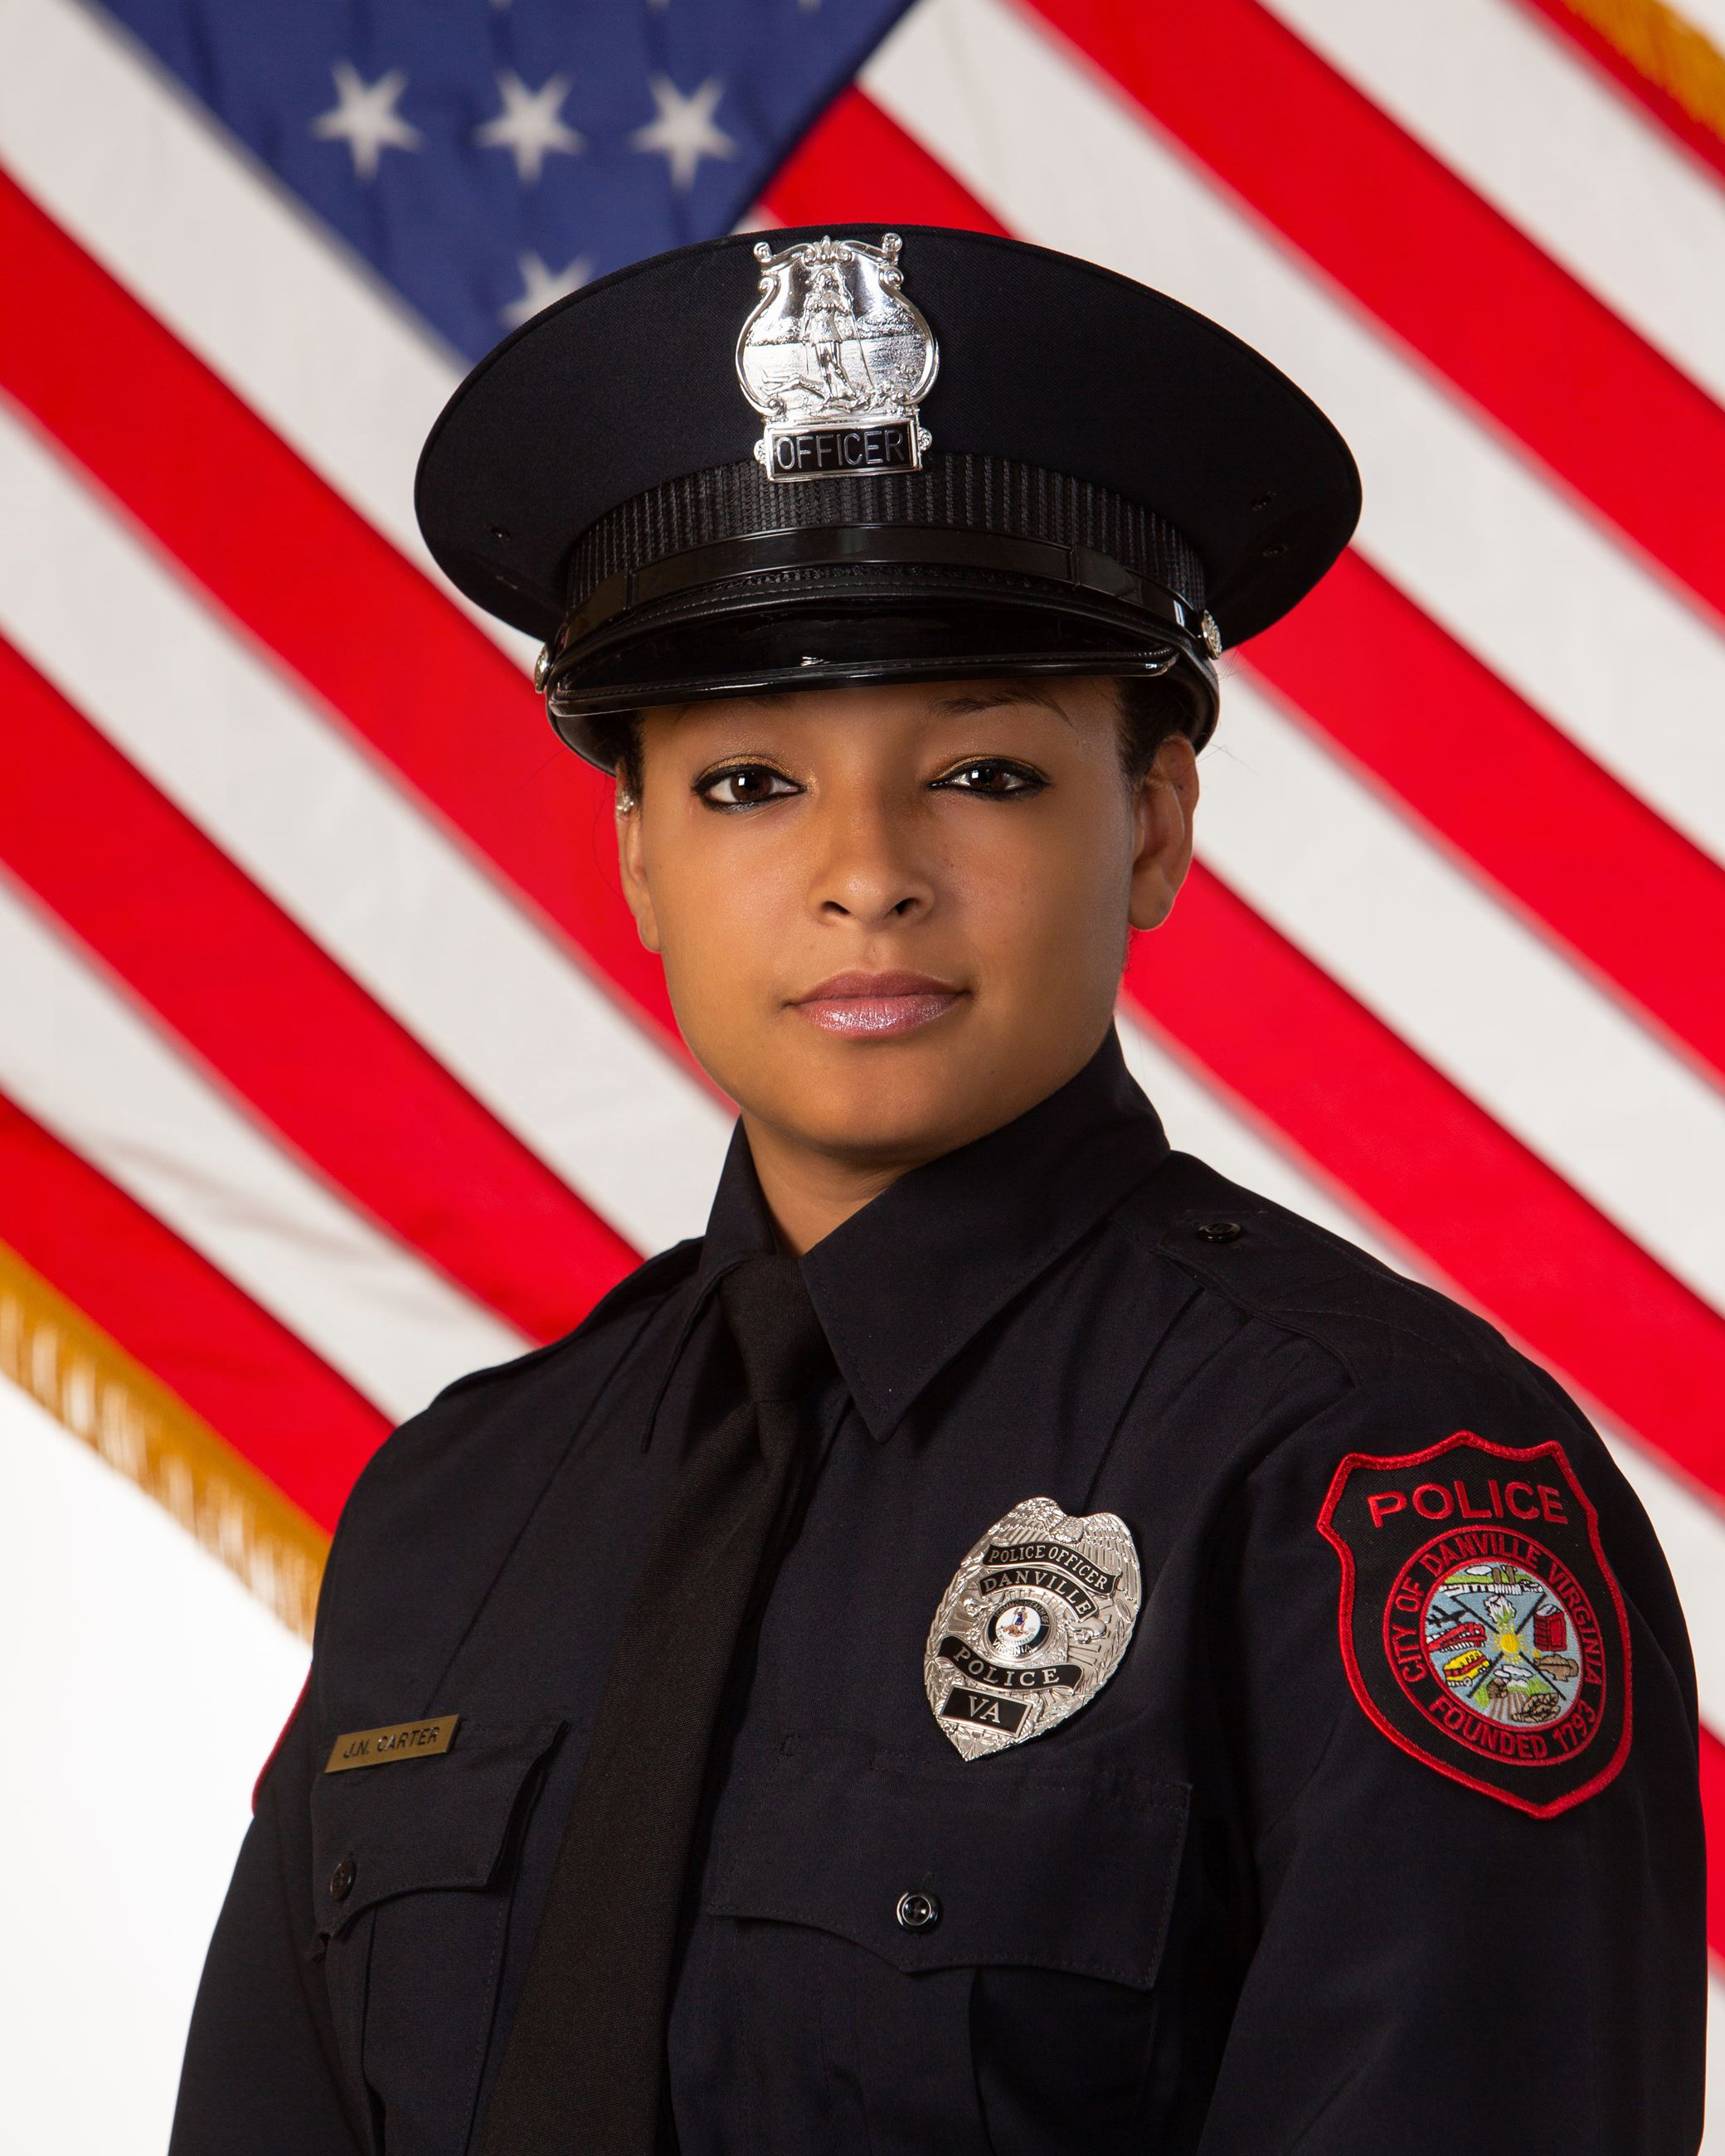 Officer J.N. Milan-Carter